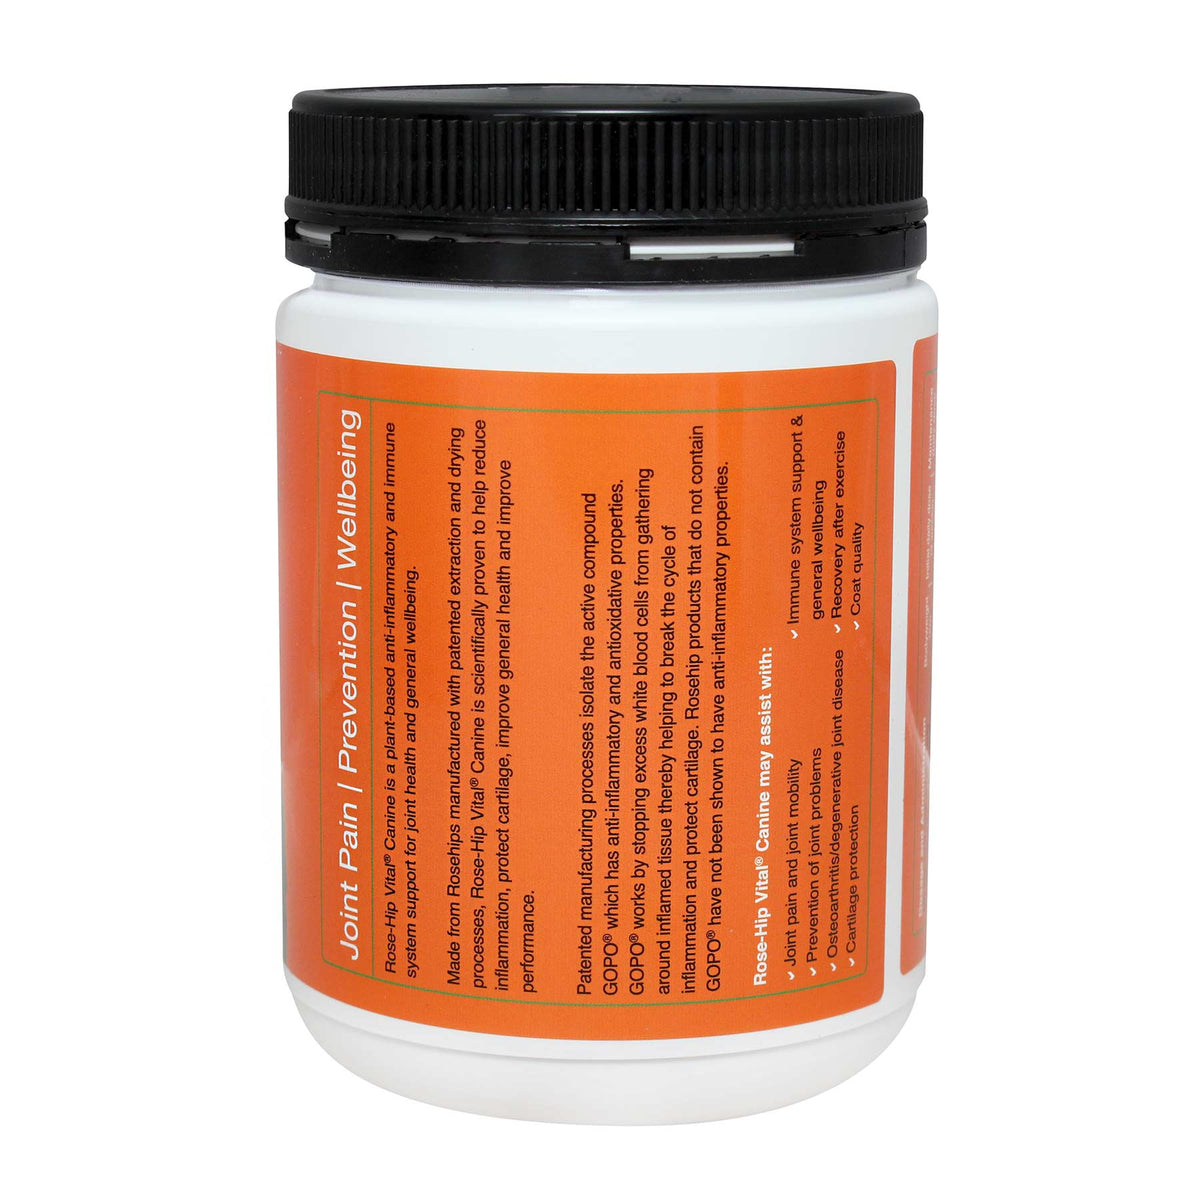 Rose-Hip Vital Canine - Joint Health & General Wellbeing for Dogs